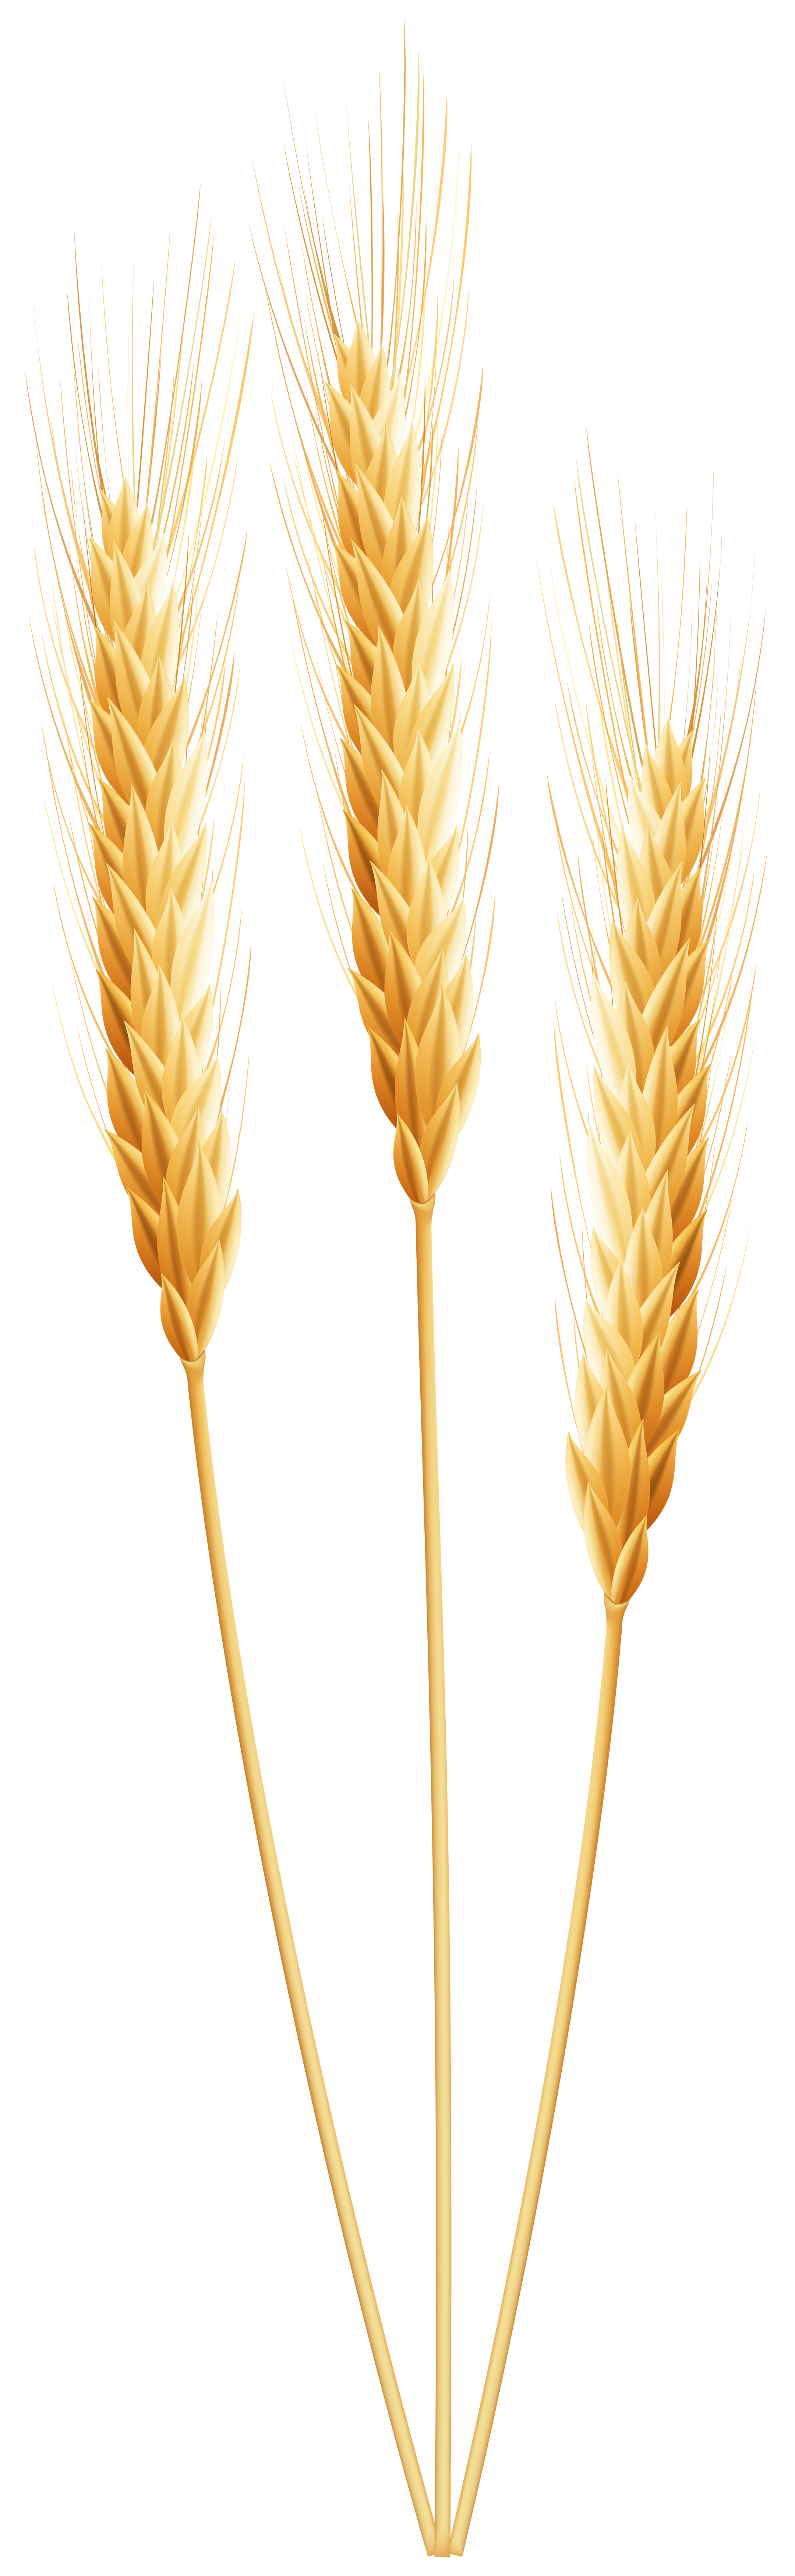 svg transparent library Wheat border clipart. Png clip art image